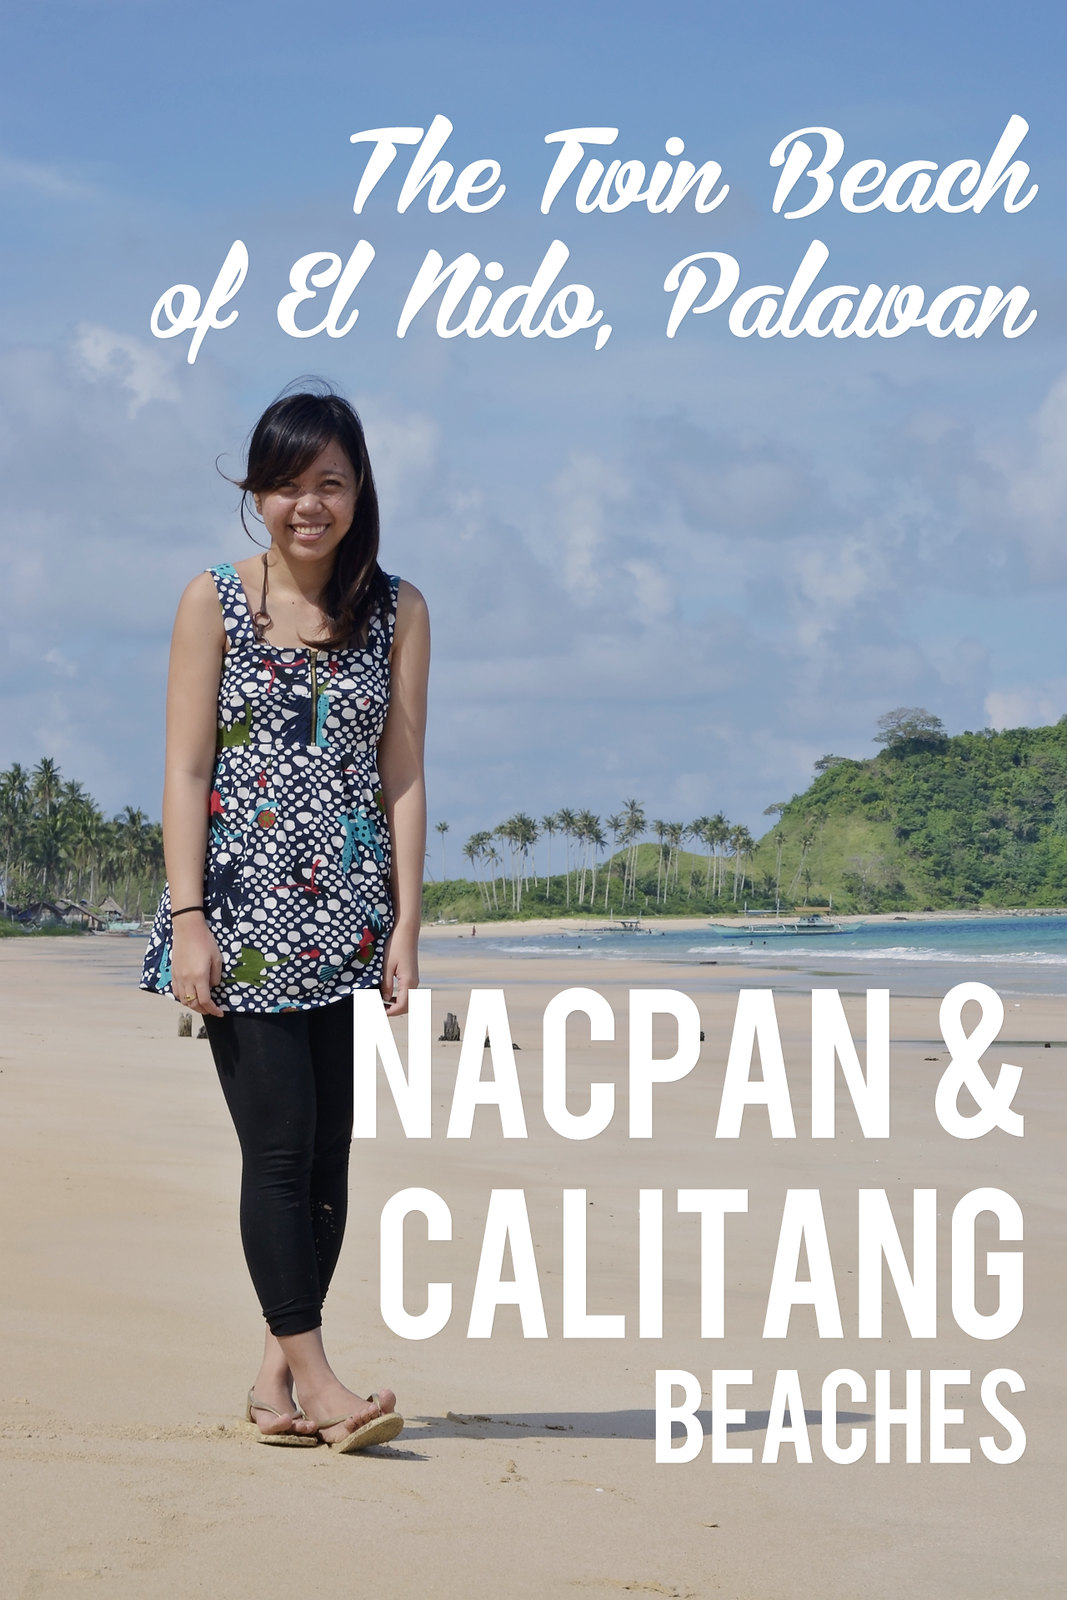 Nacpan Beach and Calitang Beach